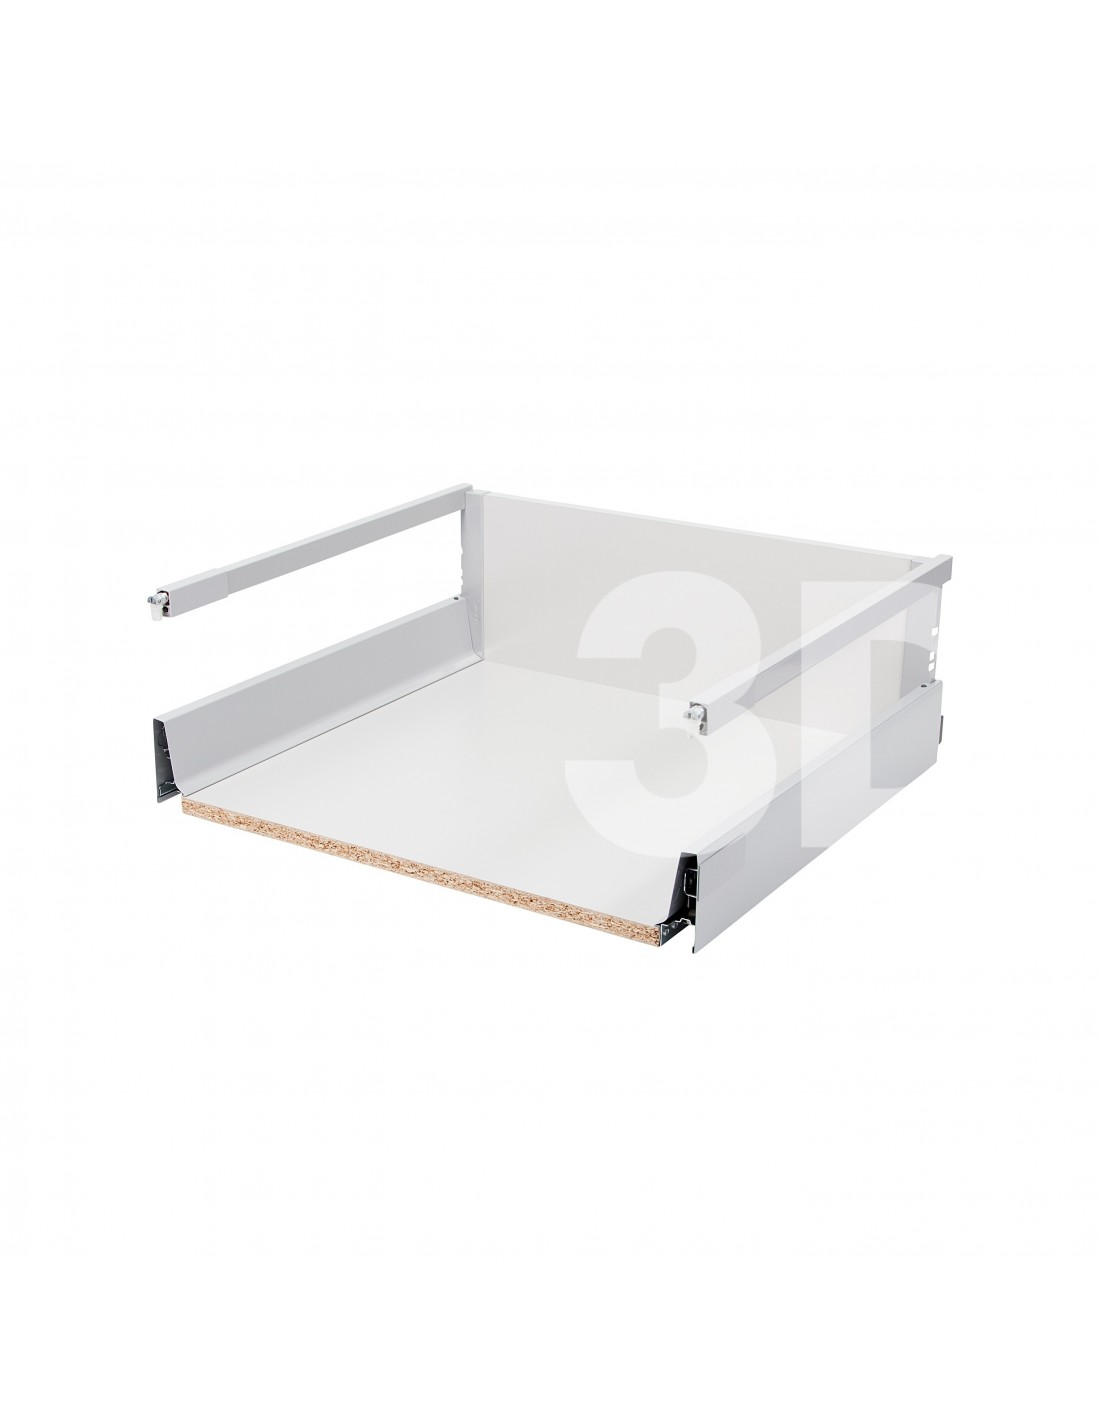 Complete d height kitchen or bedroom drawers 500mm depth for Kitchen cabinets 500mm depth